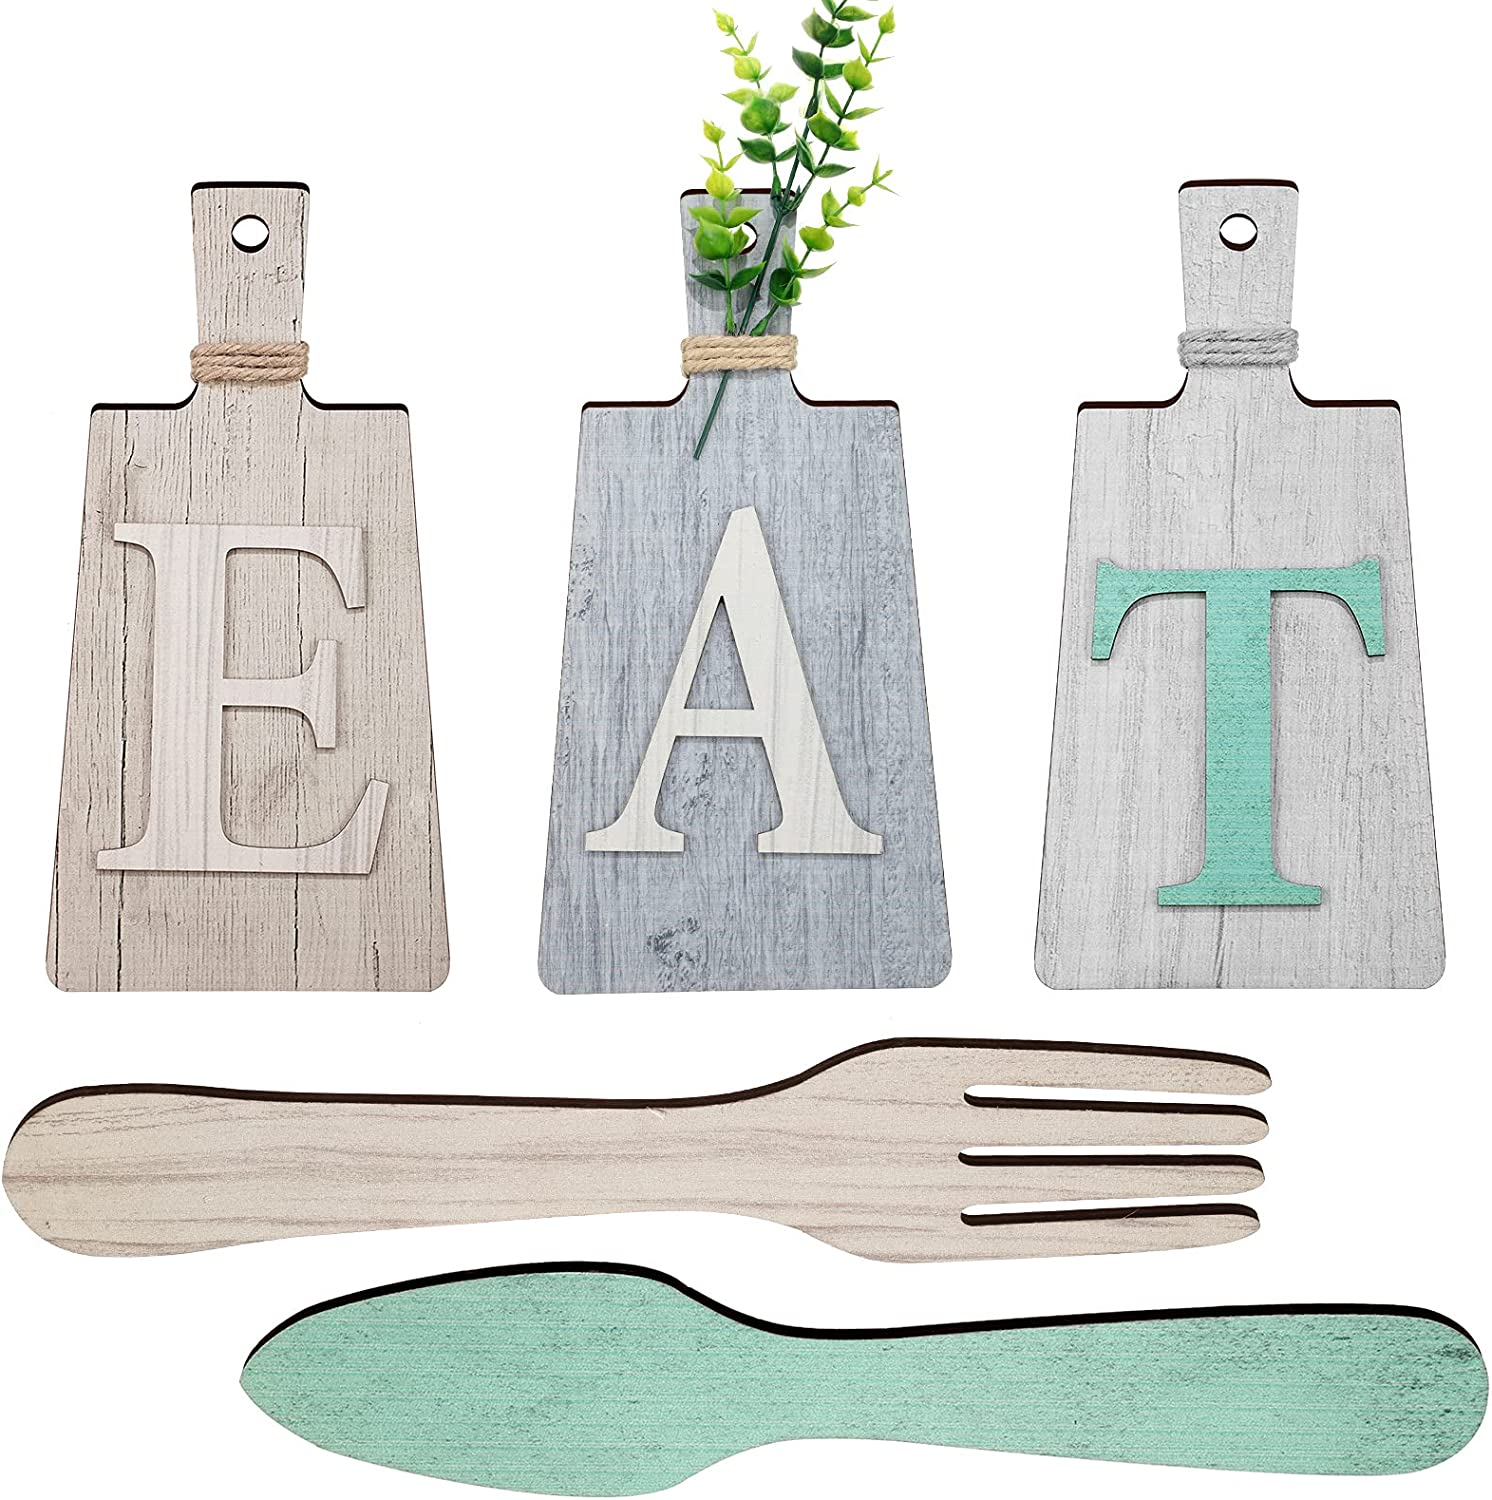 Cutting Board Eat Sign Set Hanging Art Kitchen Eat Sign Fork and Spoon Wall Decor Rustic Primitive Country Farmhouse Kitchen Decor for Kitchen and Home Decoration (Beige, Dark Gray, Gray White)